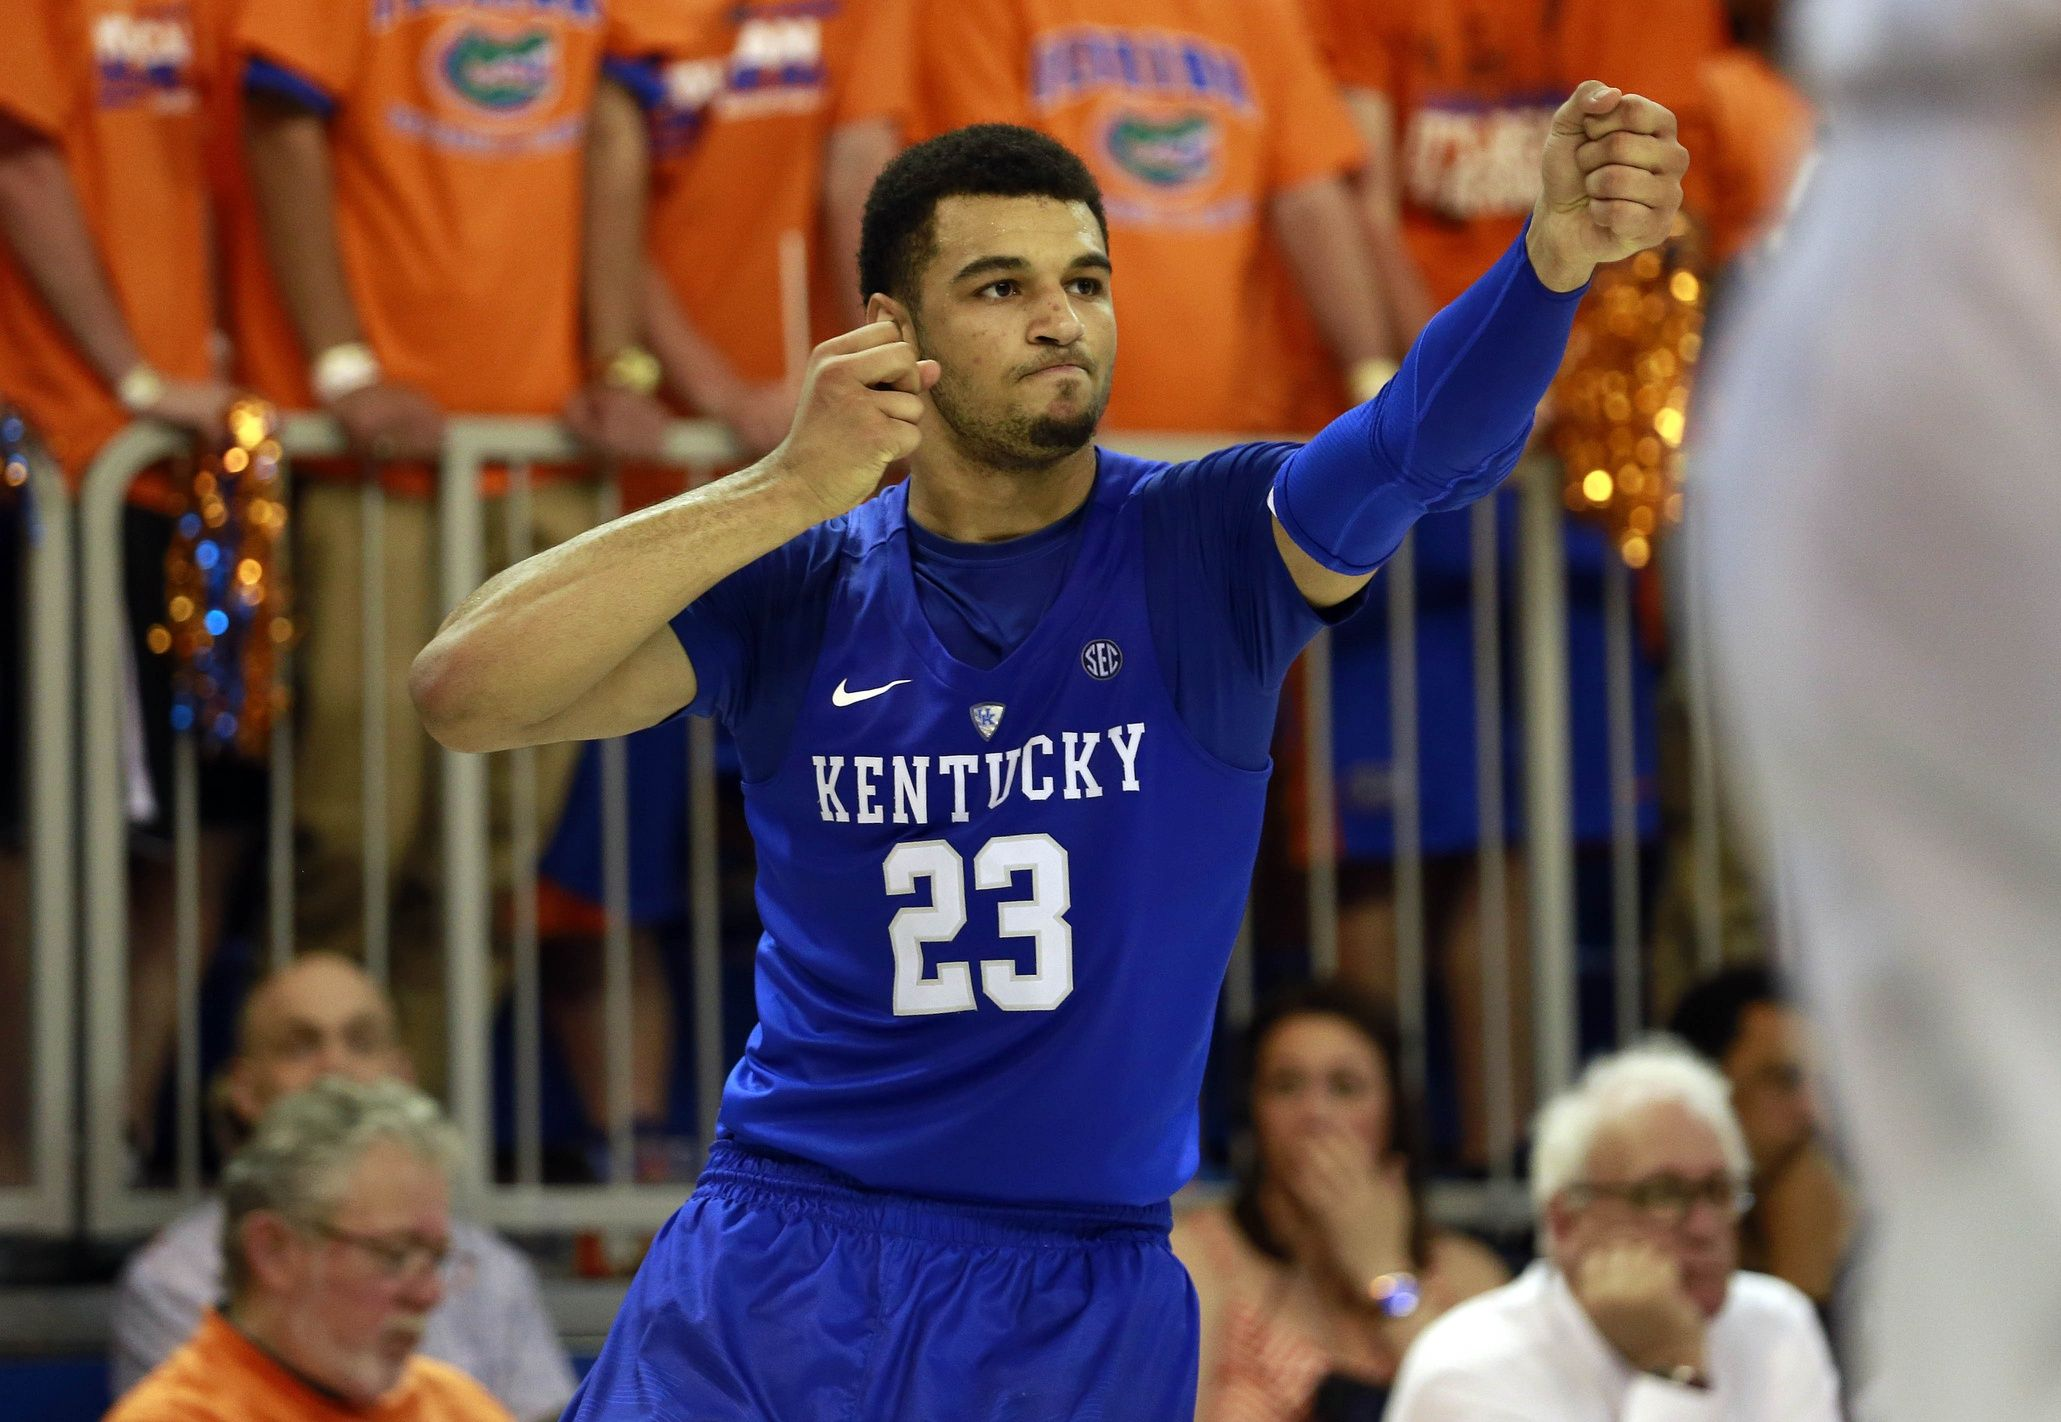 Kentucky Basketball Is An Enigma Well Into The Season: Murray And His Bow And Arrow 🎯